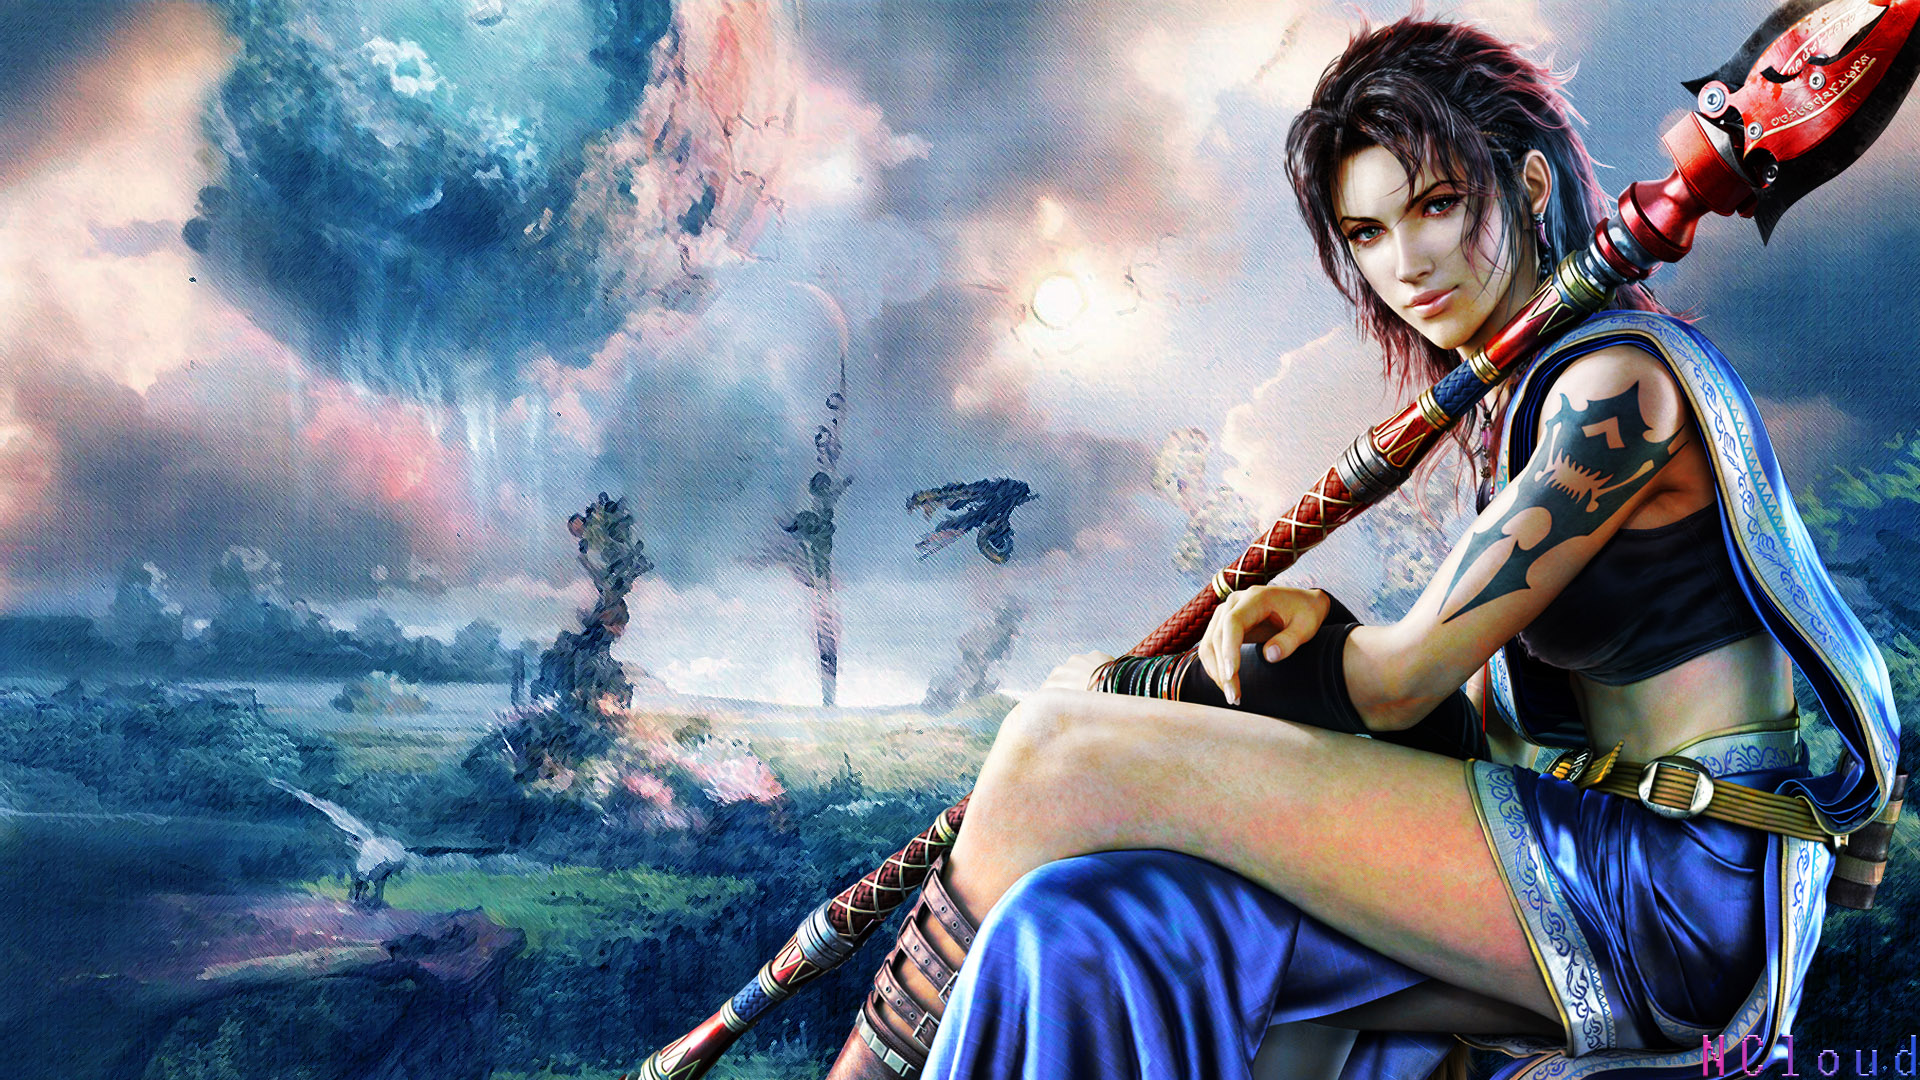 Fantasy Game Wallpaper HD wallpapers   Final Fantasy Game Wallpaper 1920x1080